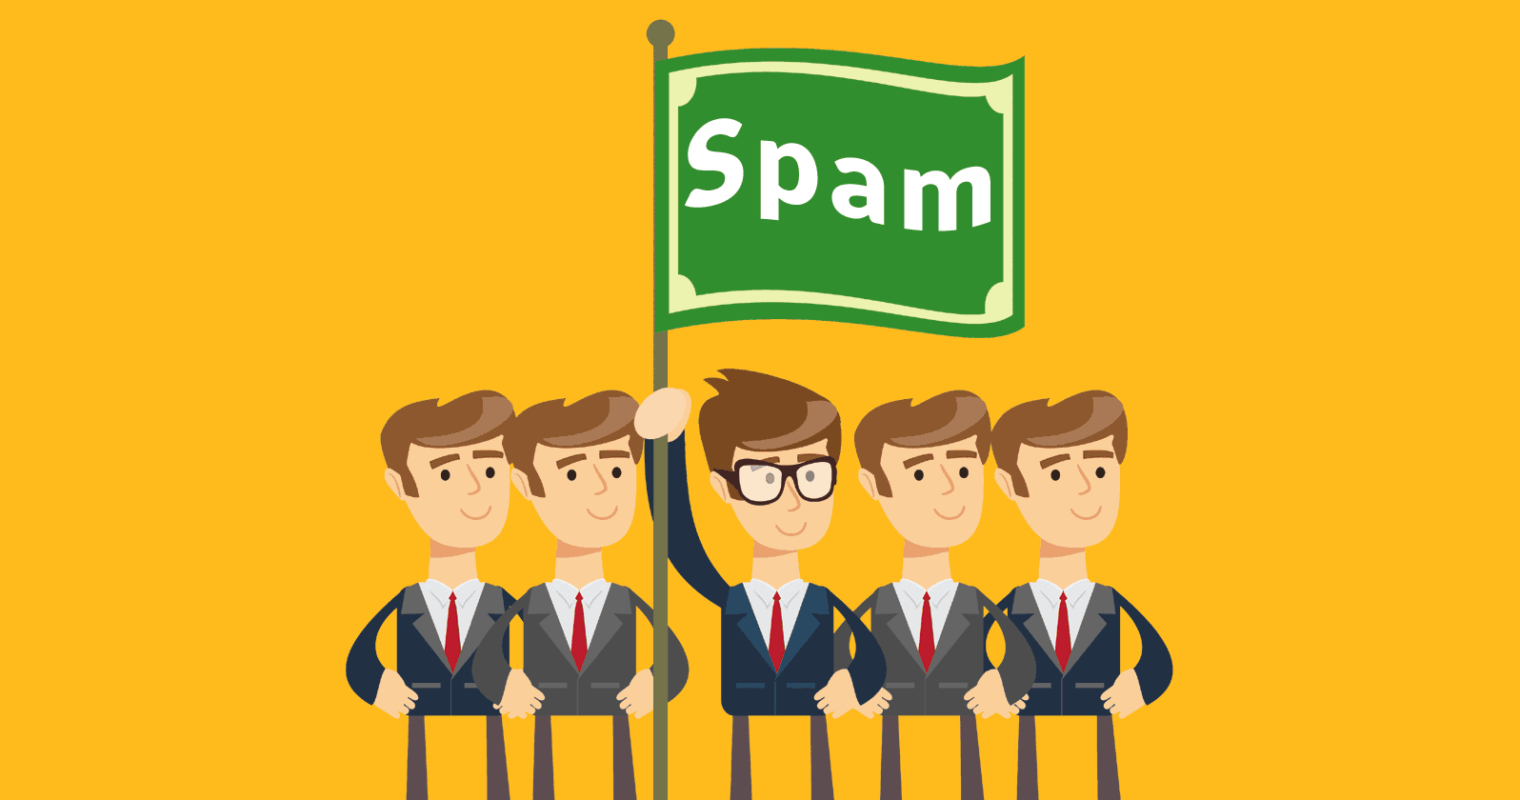 Google Reportedly Tolerated Spam on Non-Search Products